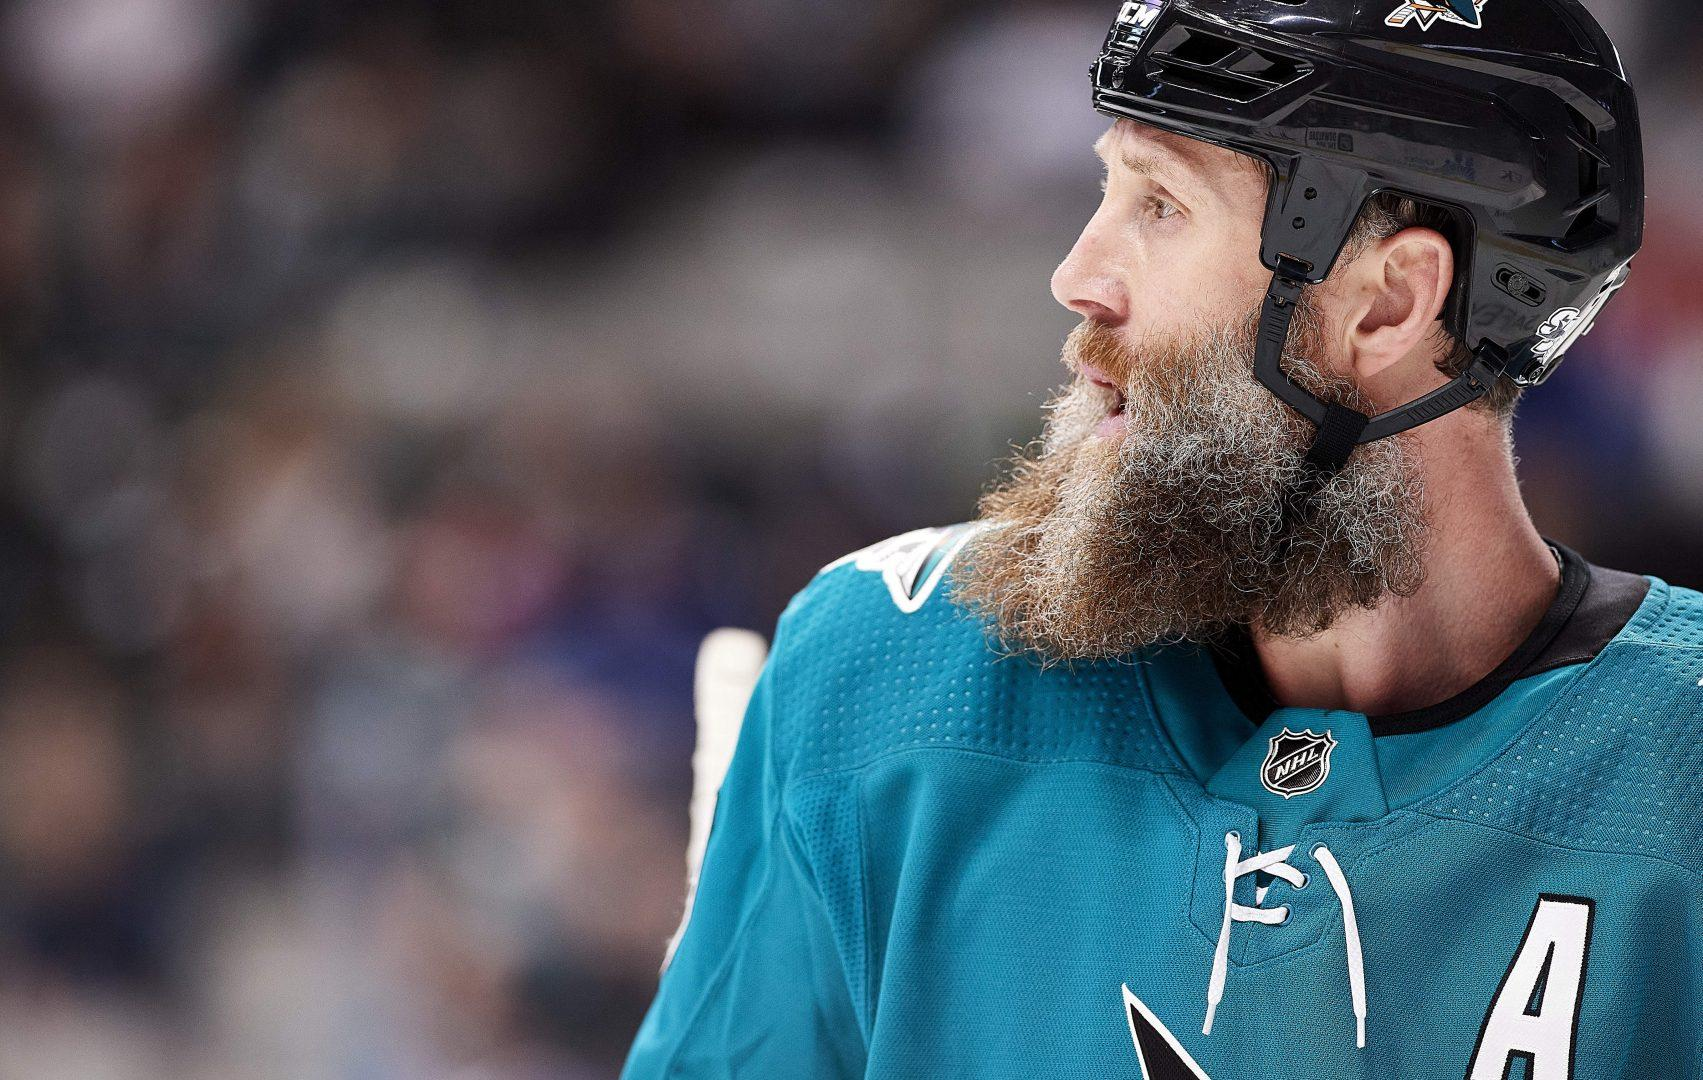 Joe Thornton's Stanley Cup dreams dashed for another season